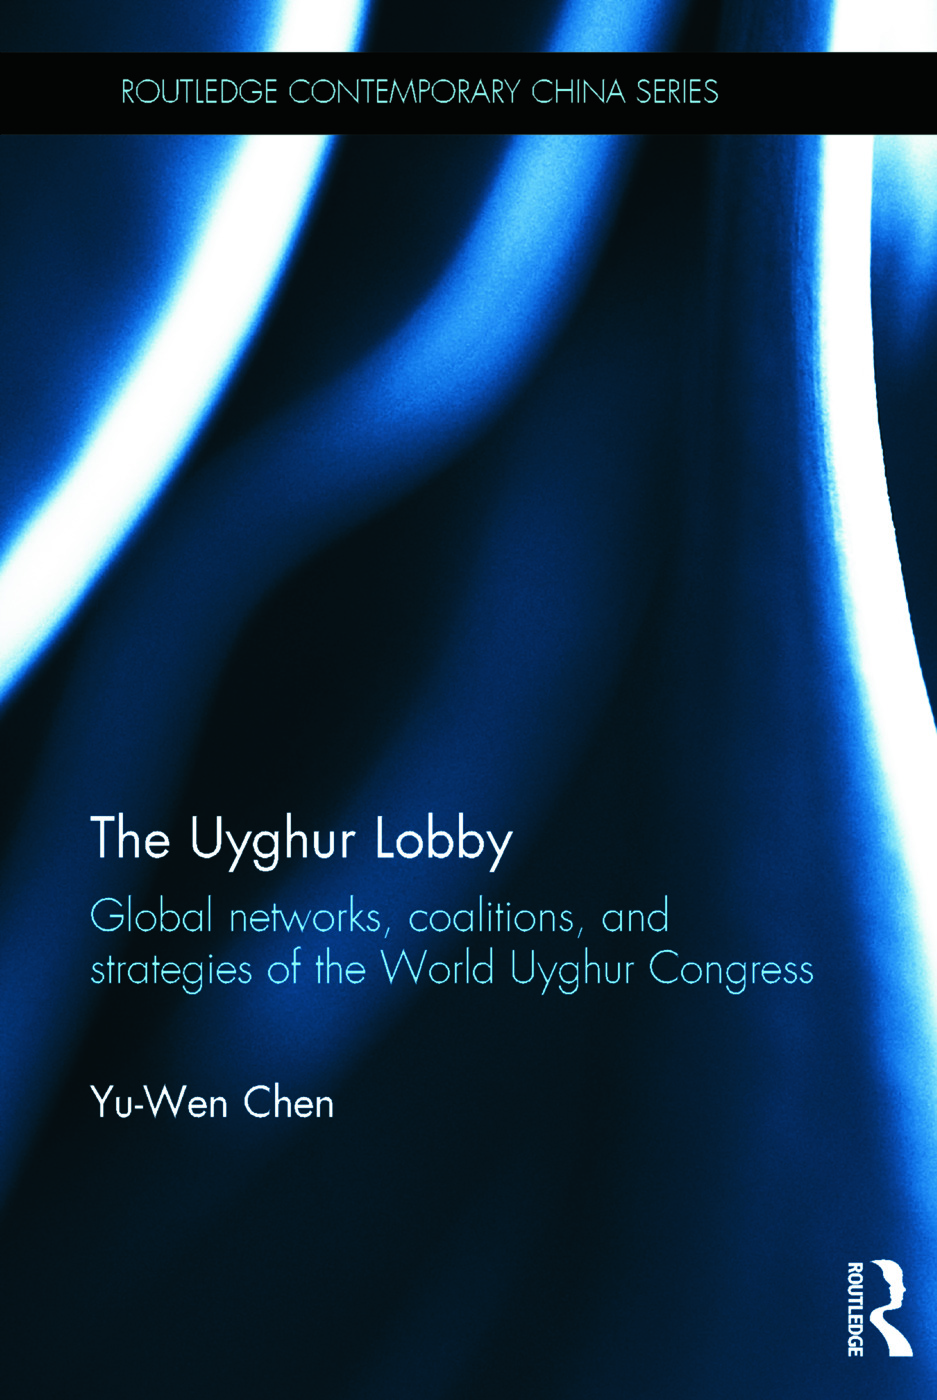 The Uyghur Lobby: Global Networks, Coalitions and Strategies of the World Uyghur Congress, 1st Edition (Hardback) book cover